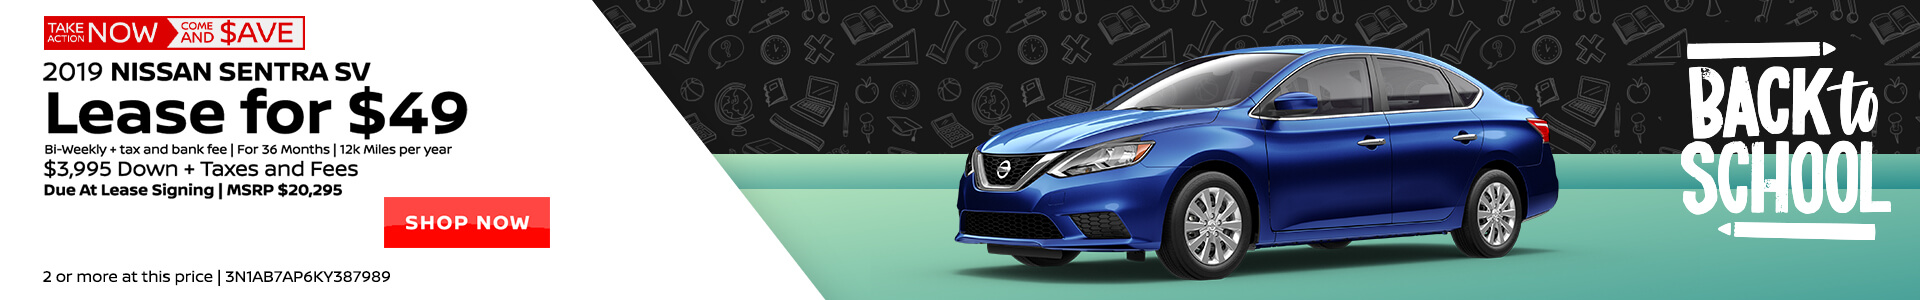 Nissan Sentra $49 Lease